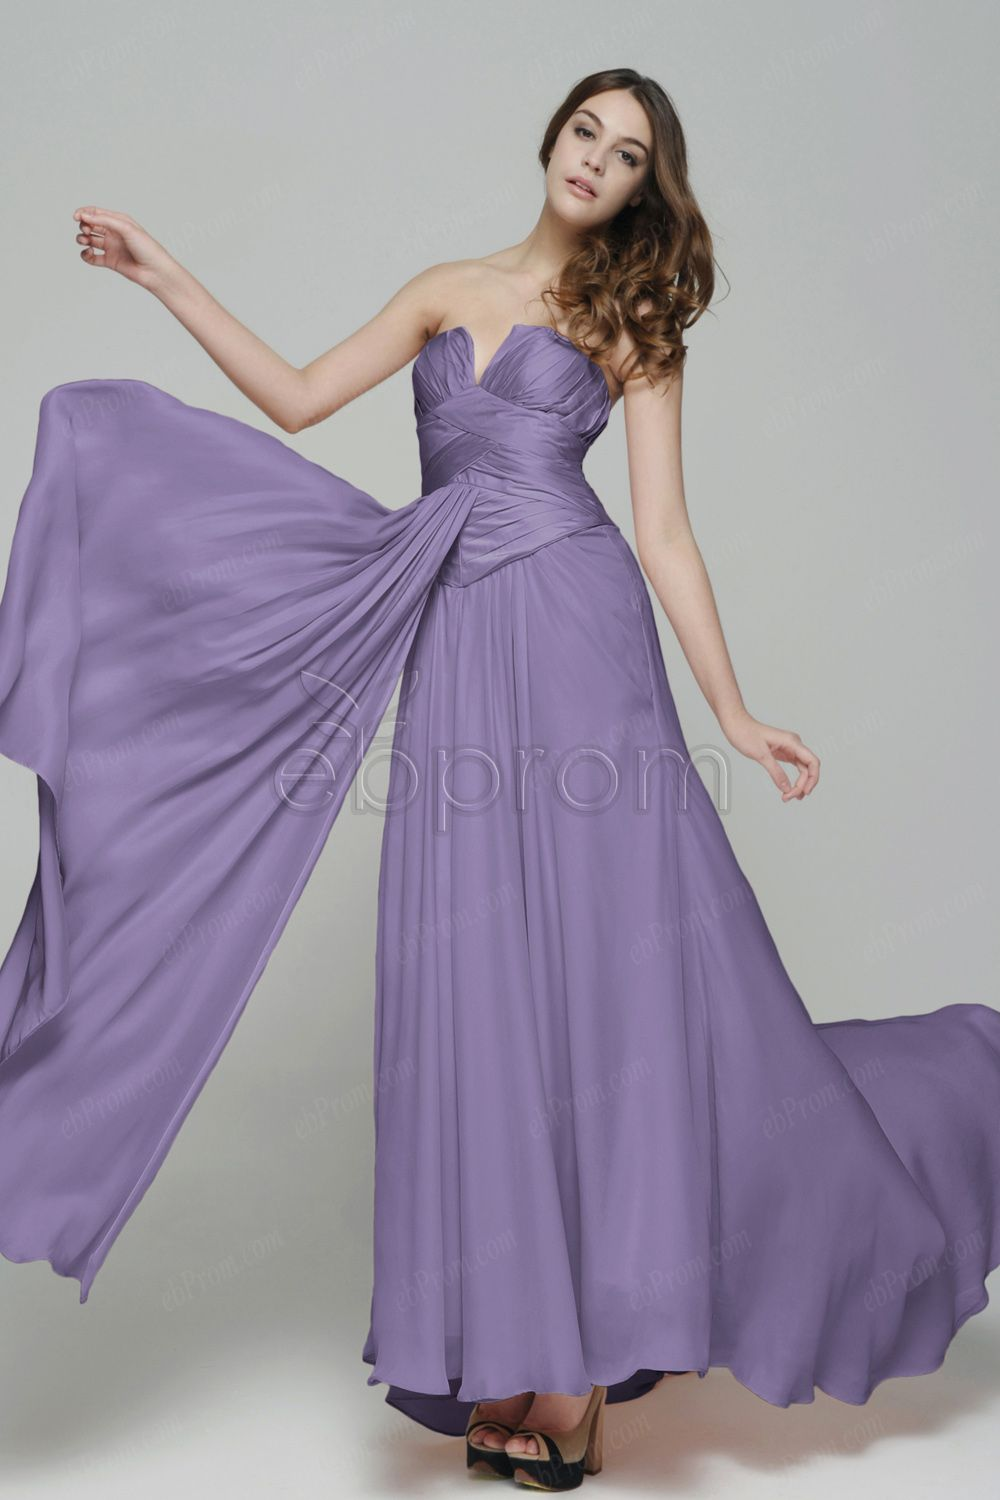 Strapless Lavender Long Prom Dress with Pleated Top | ebProm Prom ...